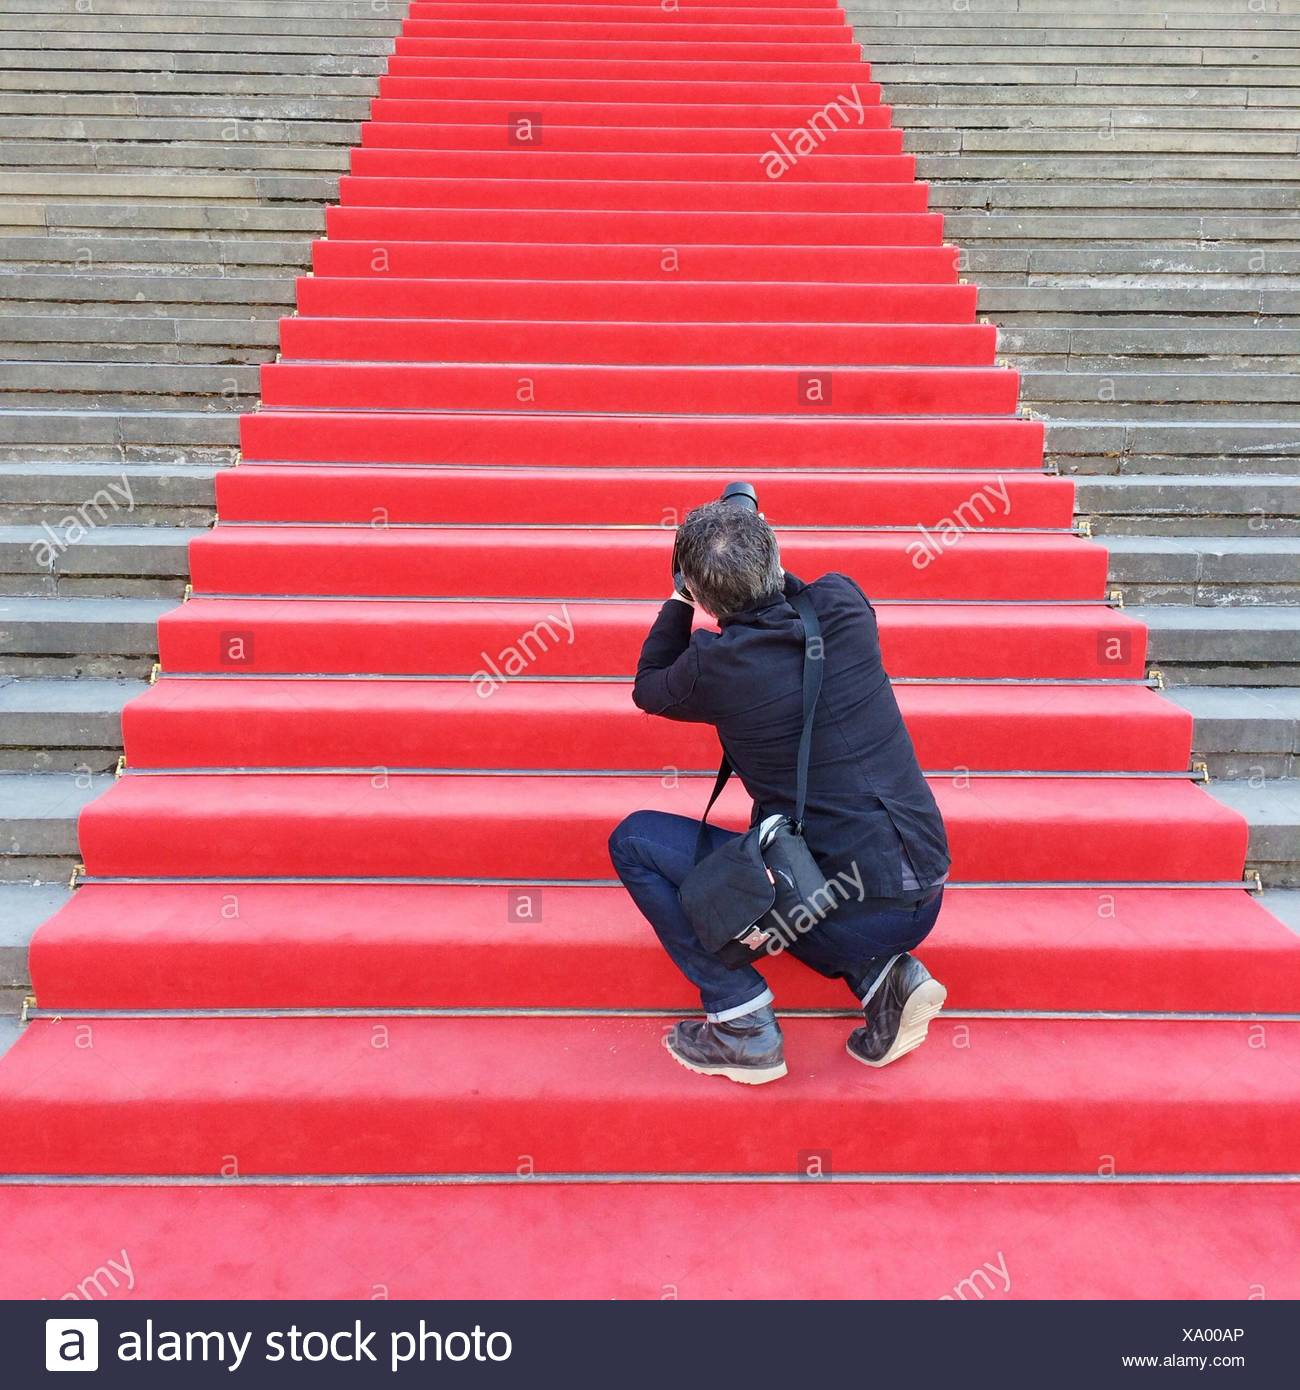 Rear View Of A Male Paparazzi On Red Carpeted Stairs - Stock Image